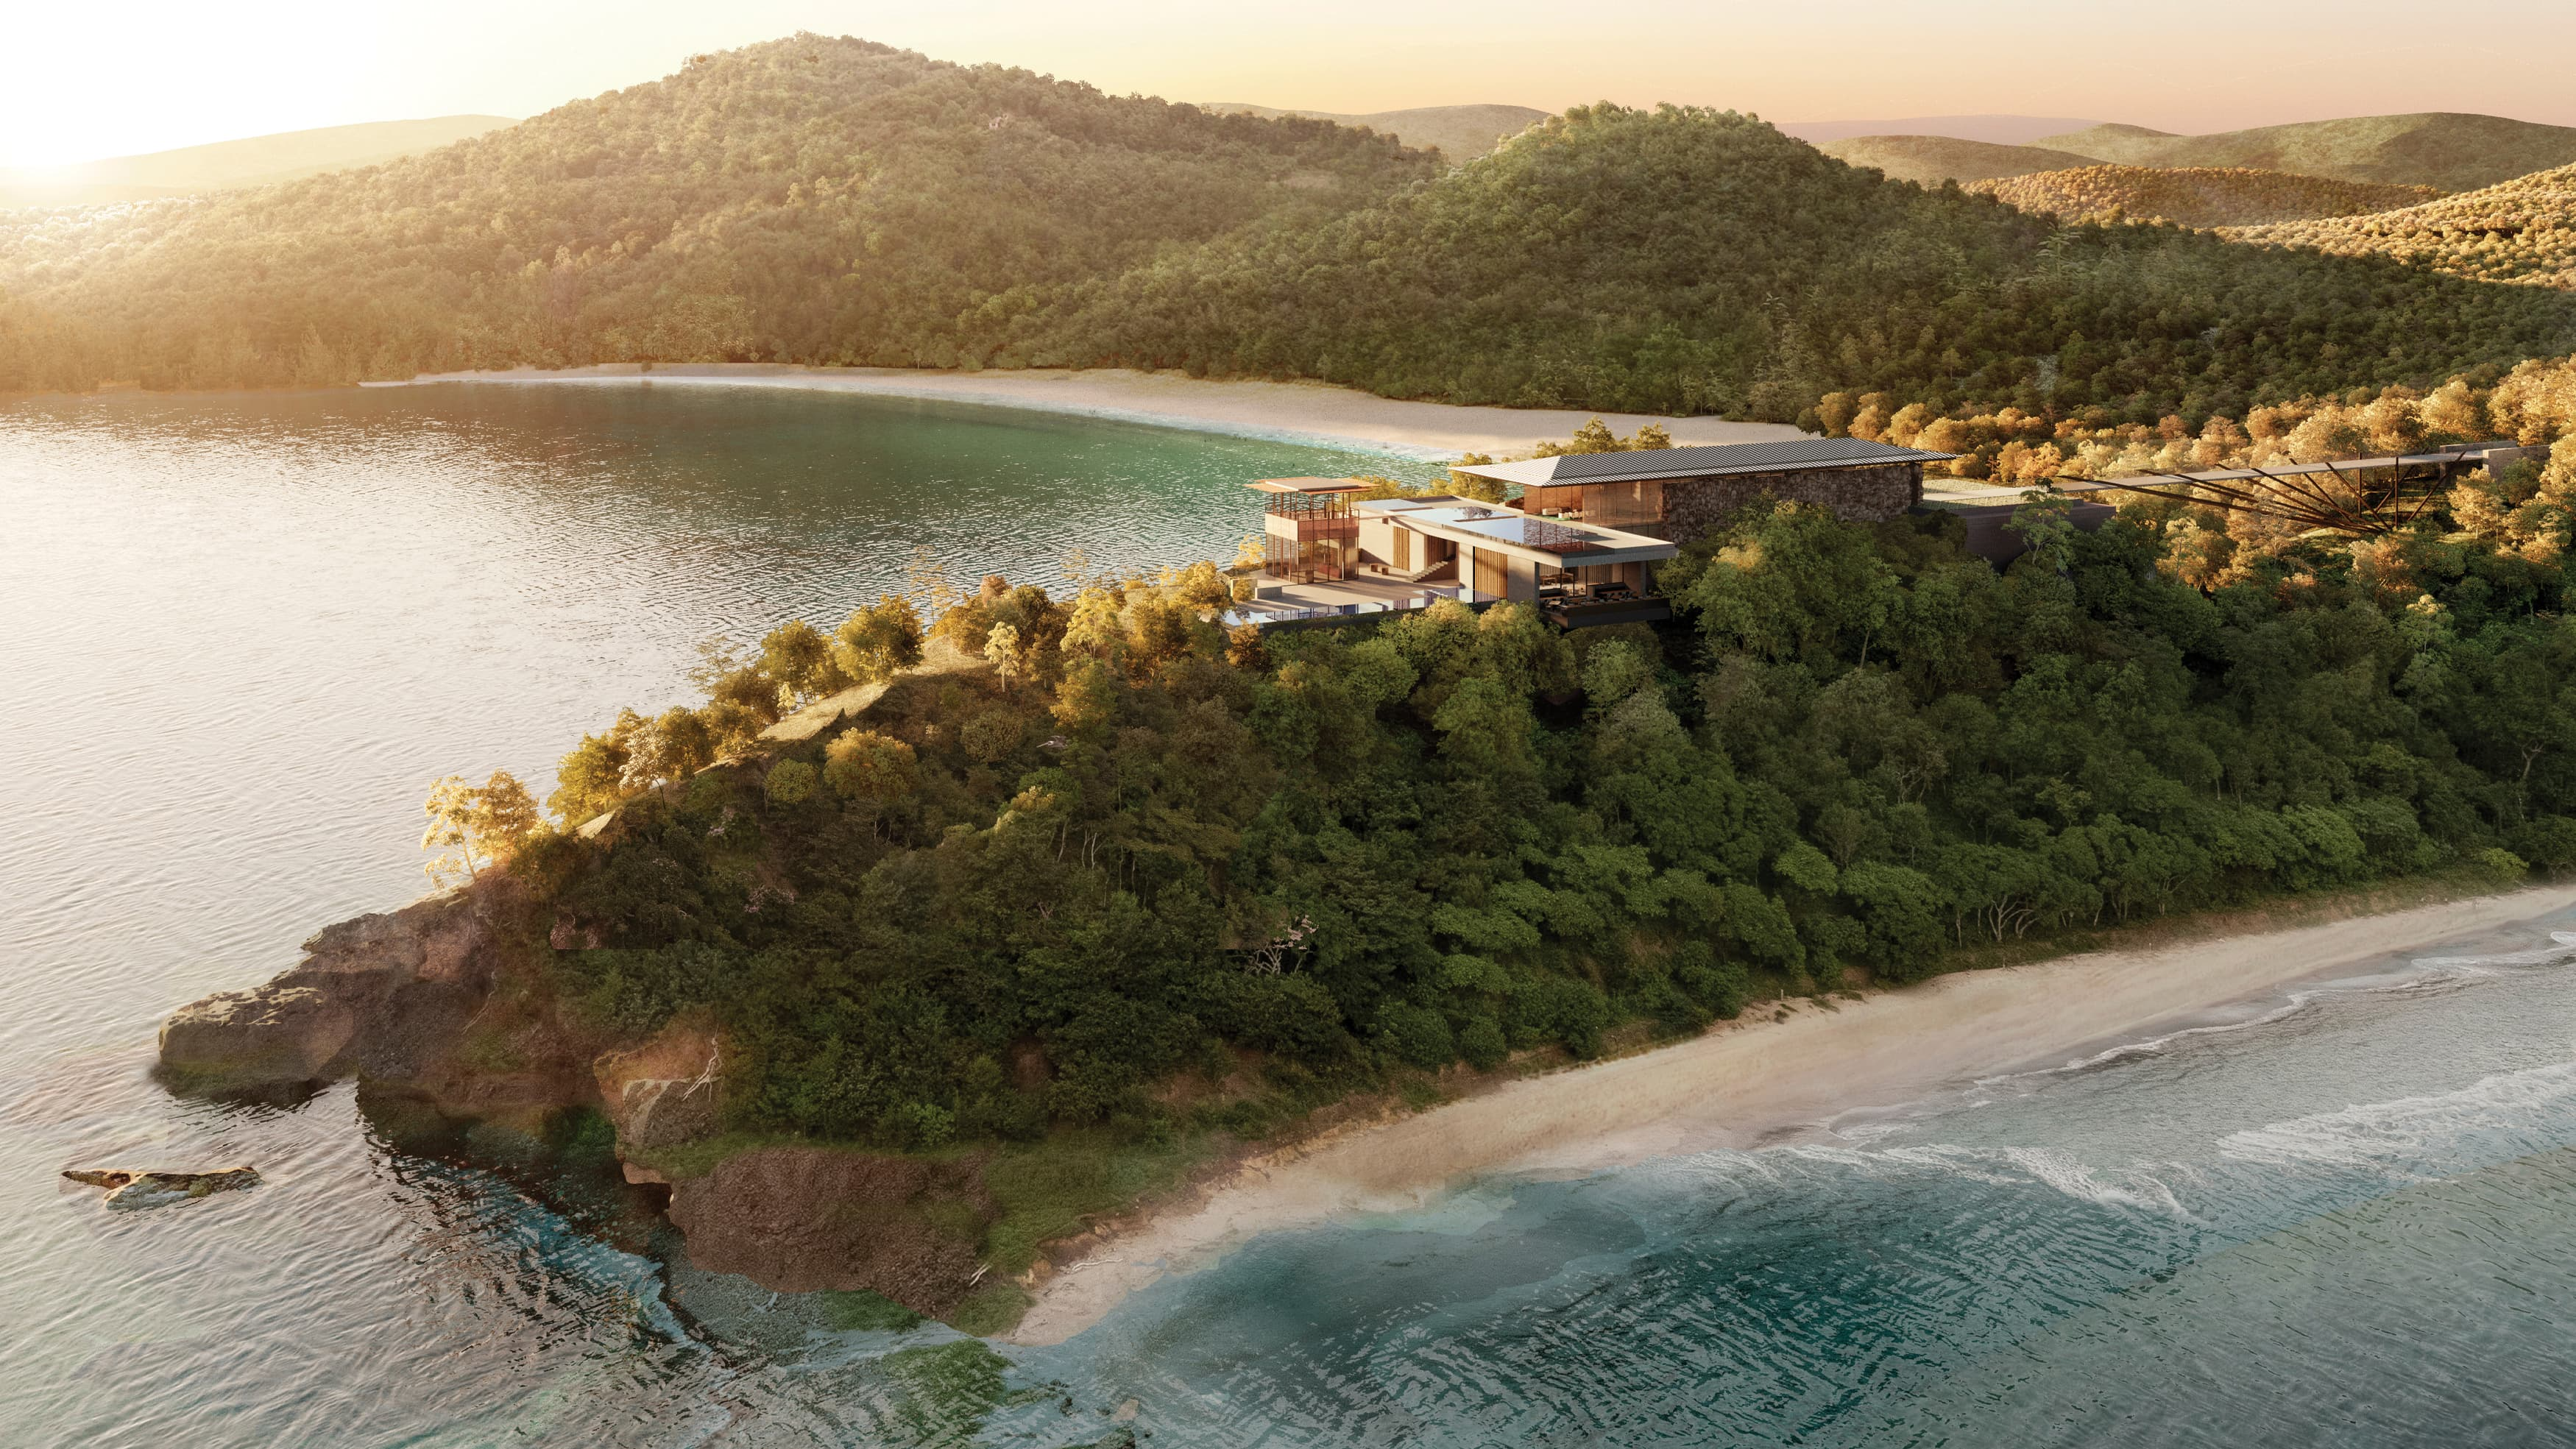 Aerial view of Aman resort surrounded by lush greenery located in Costa Rica.